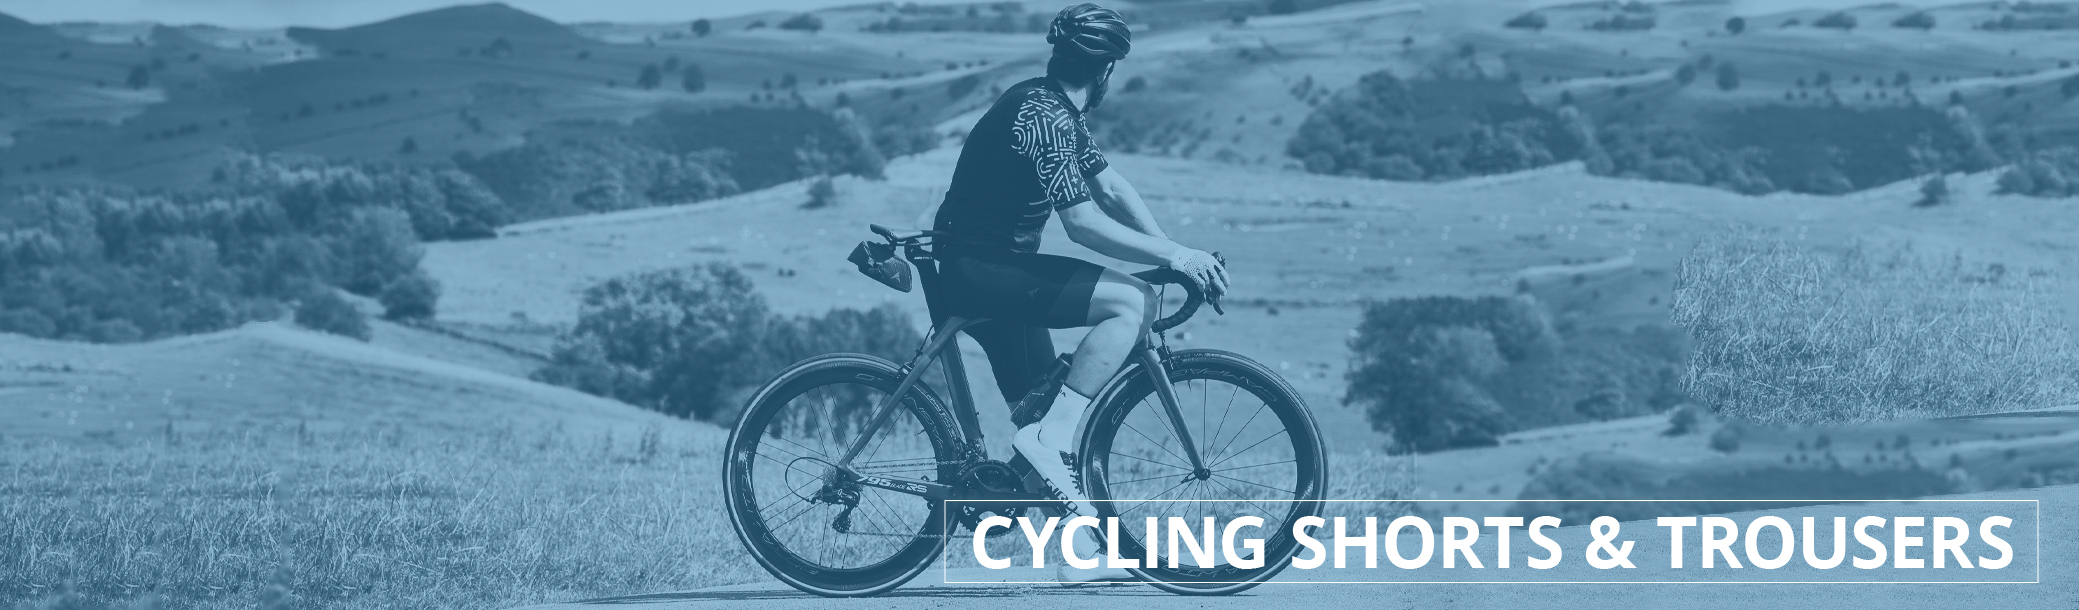 Cycling Shorts & Trousers